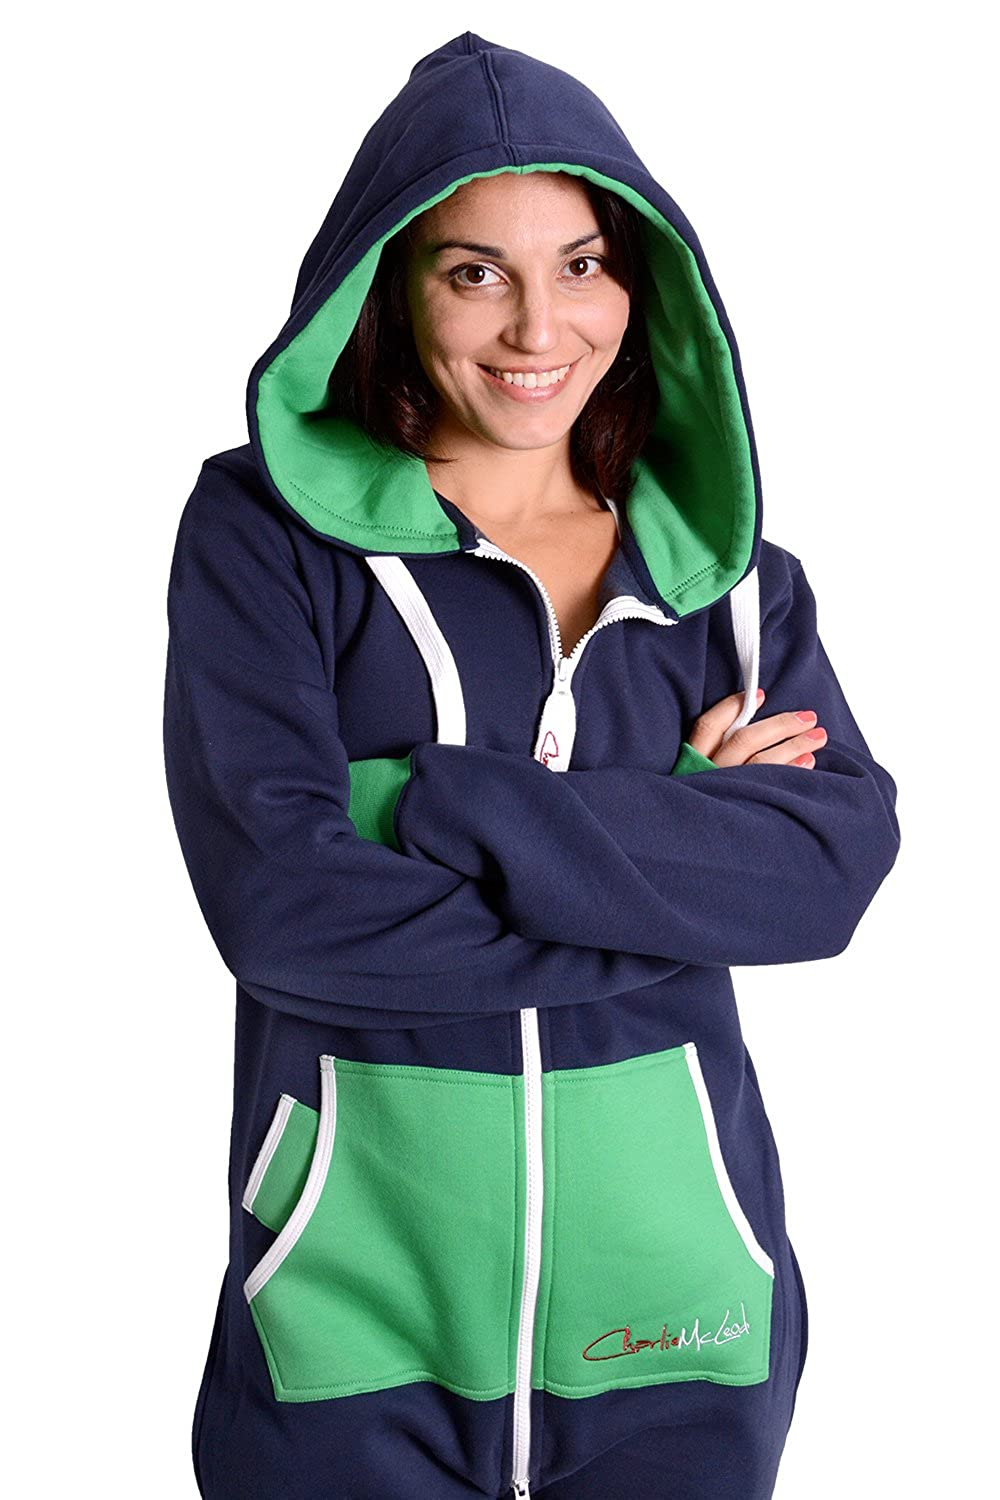 Charlie McLeod The Classic Unisex Onesie in Gorgeous Green The Perfect Adult Onepiece Jumpsuit with Free Matching Bag from